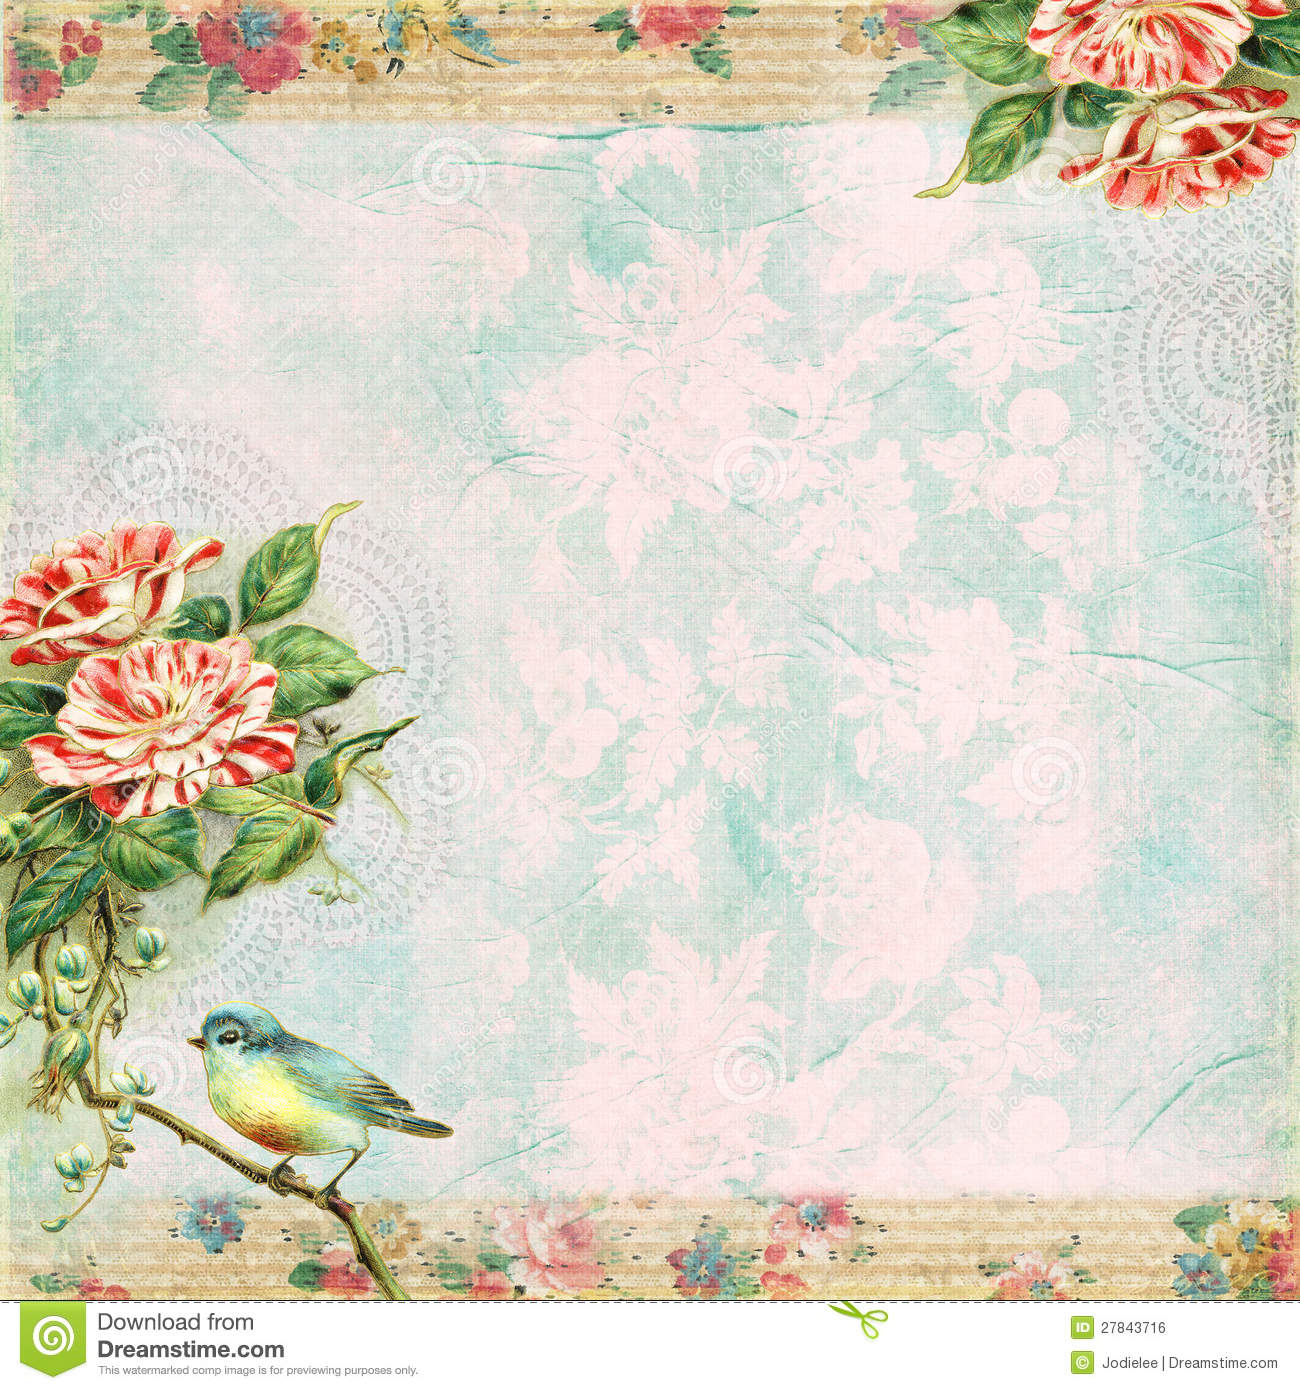 the gallery for gt vintage birds backgrounds